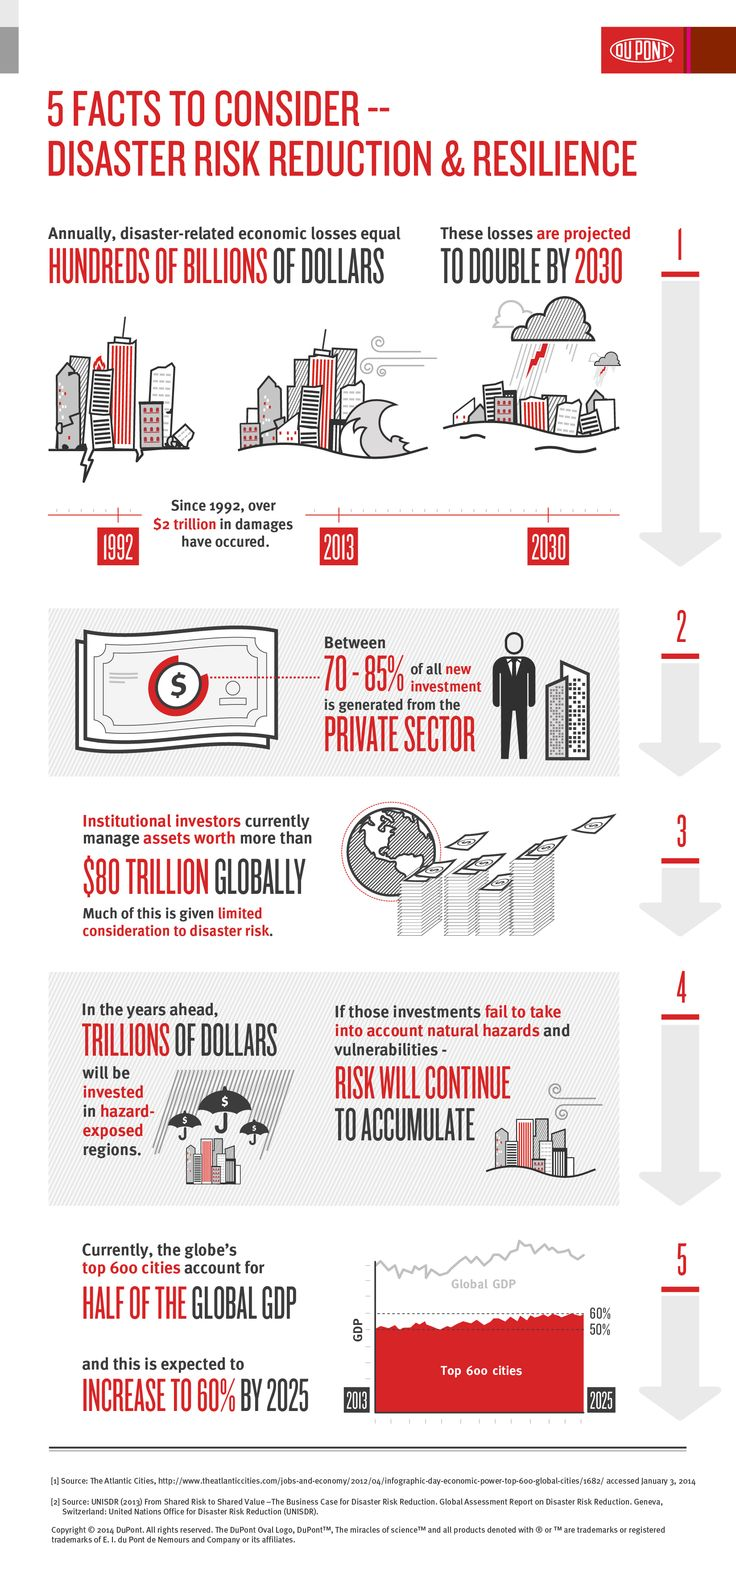 Disaster Risk Reduction and Resilience 5 Facts DuPont